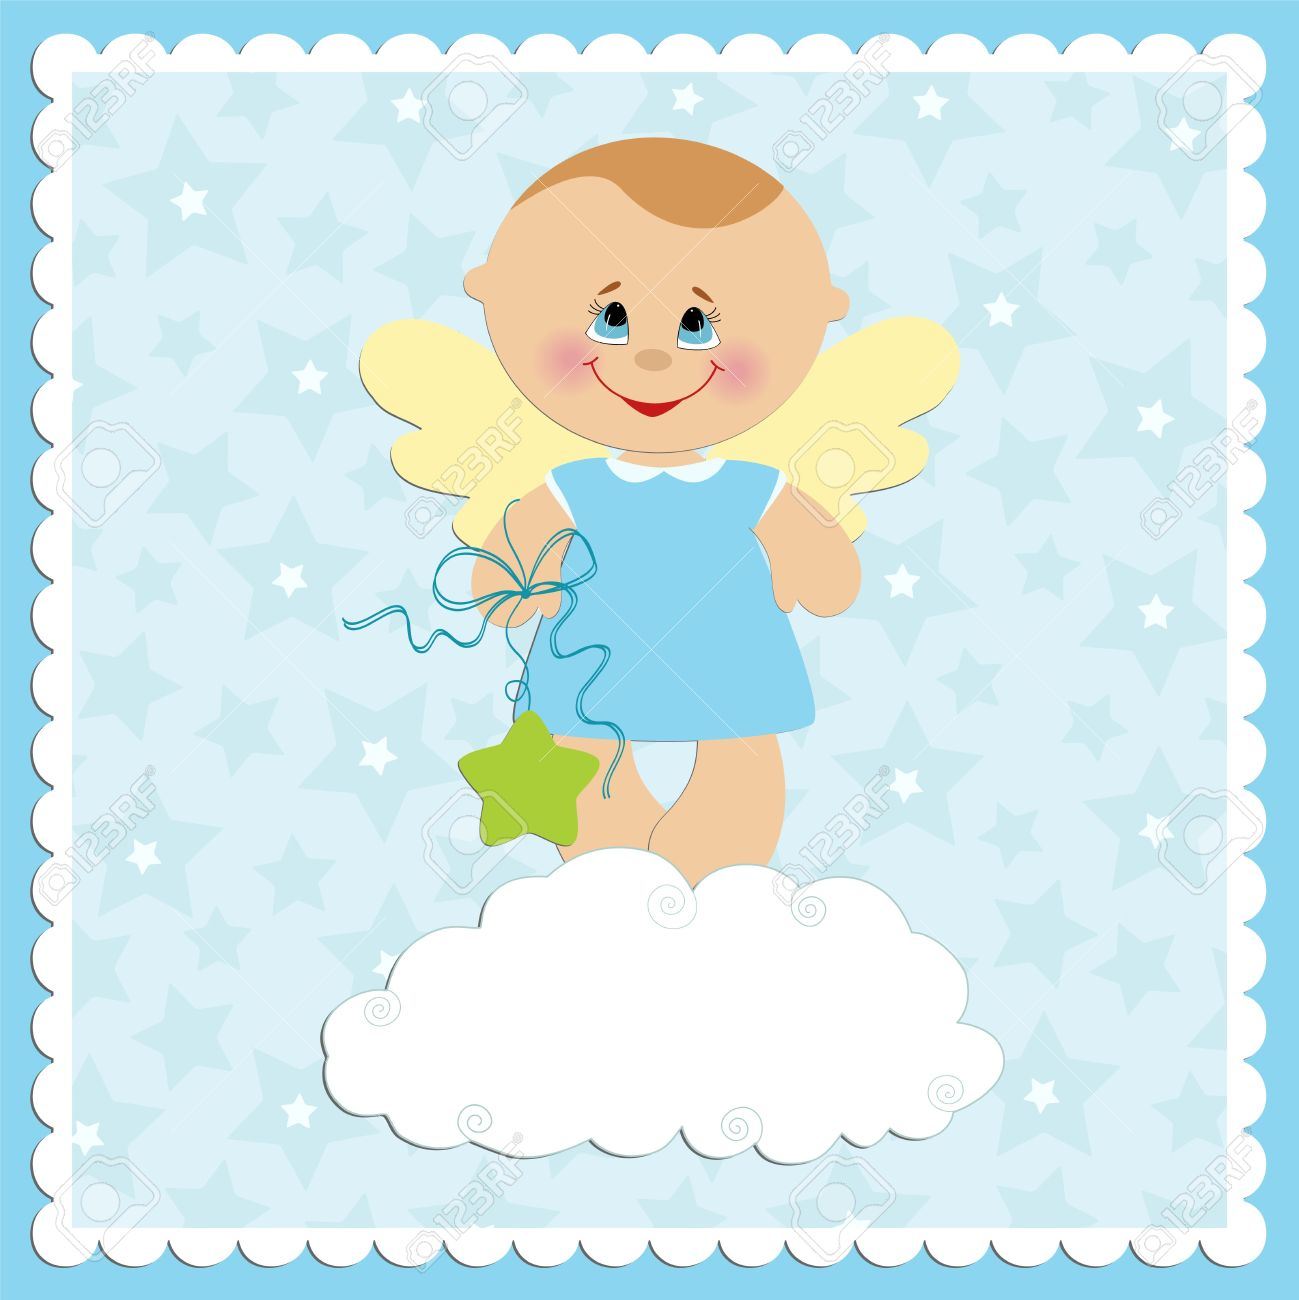 Baby greetings card with angel boy royalty free cliparts vectors baby greetings card with angel boy stock vector 8181327 m4hsunfo